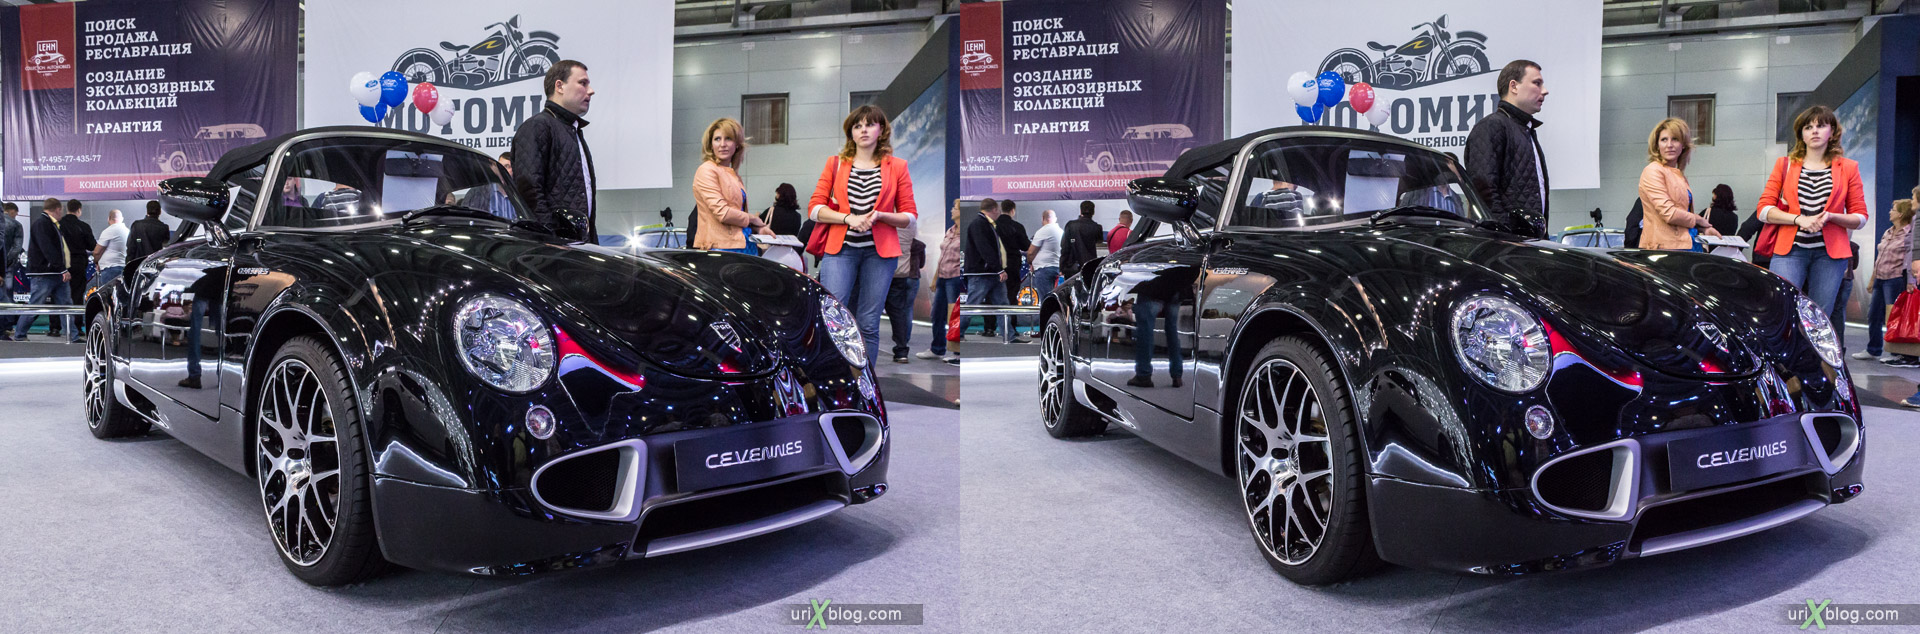 2014, PGO Cevennes, Moscow International Automobile Salon, MIAS, Crocus Expo, Moscow, Russia, augest, 3D, stereo pair, cross-eyed, crossview, cross view stereo pair, stereoscopic